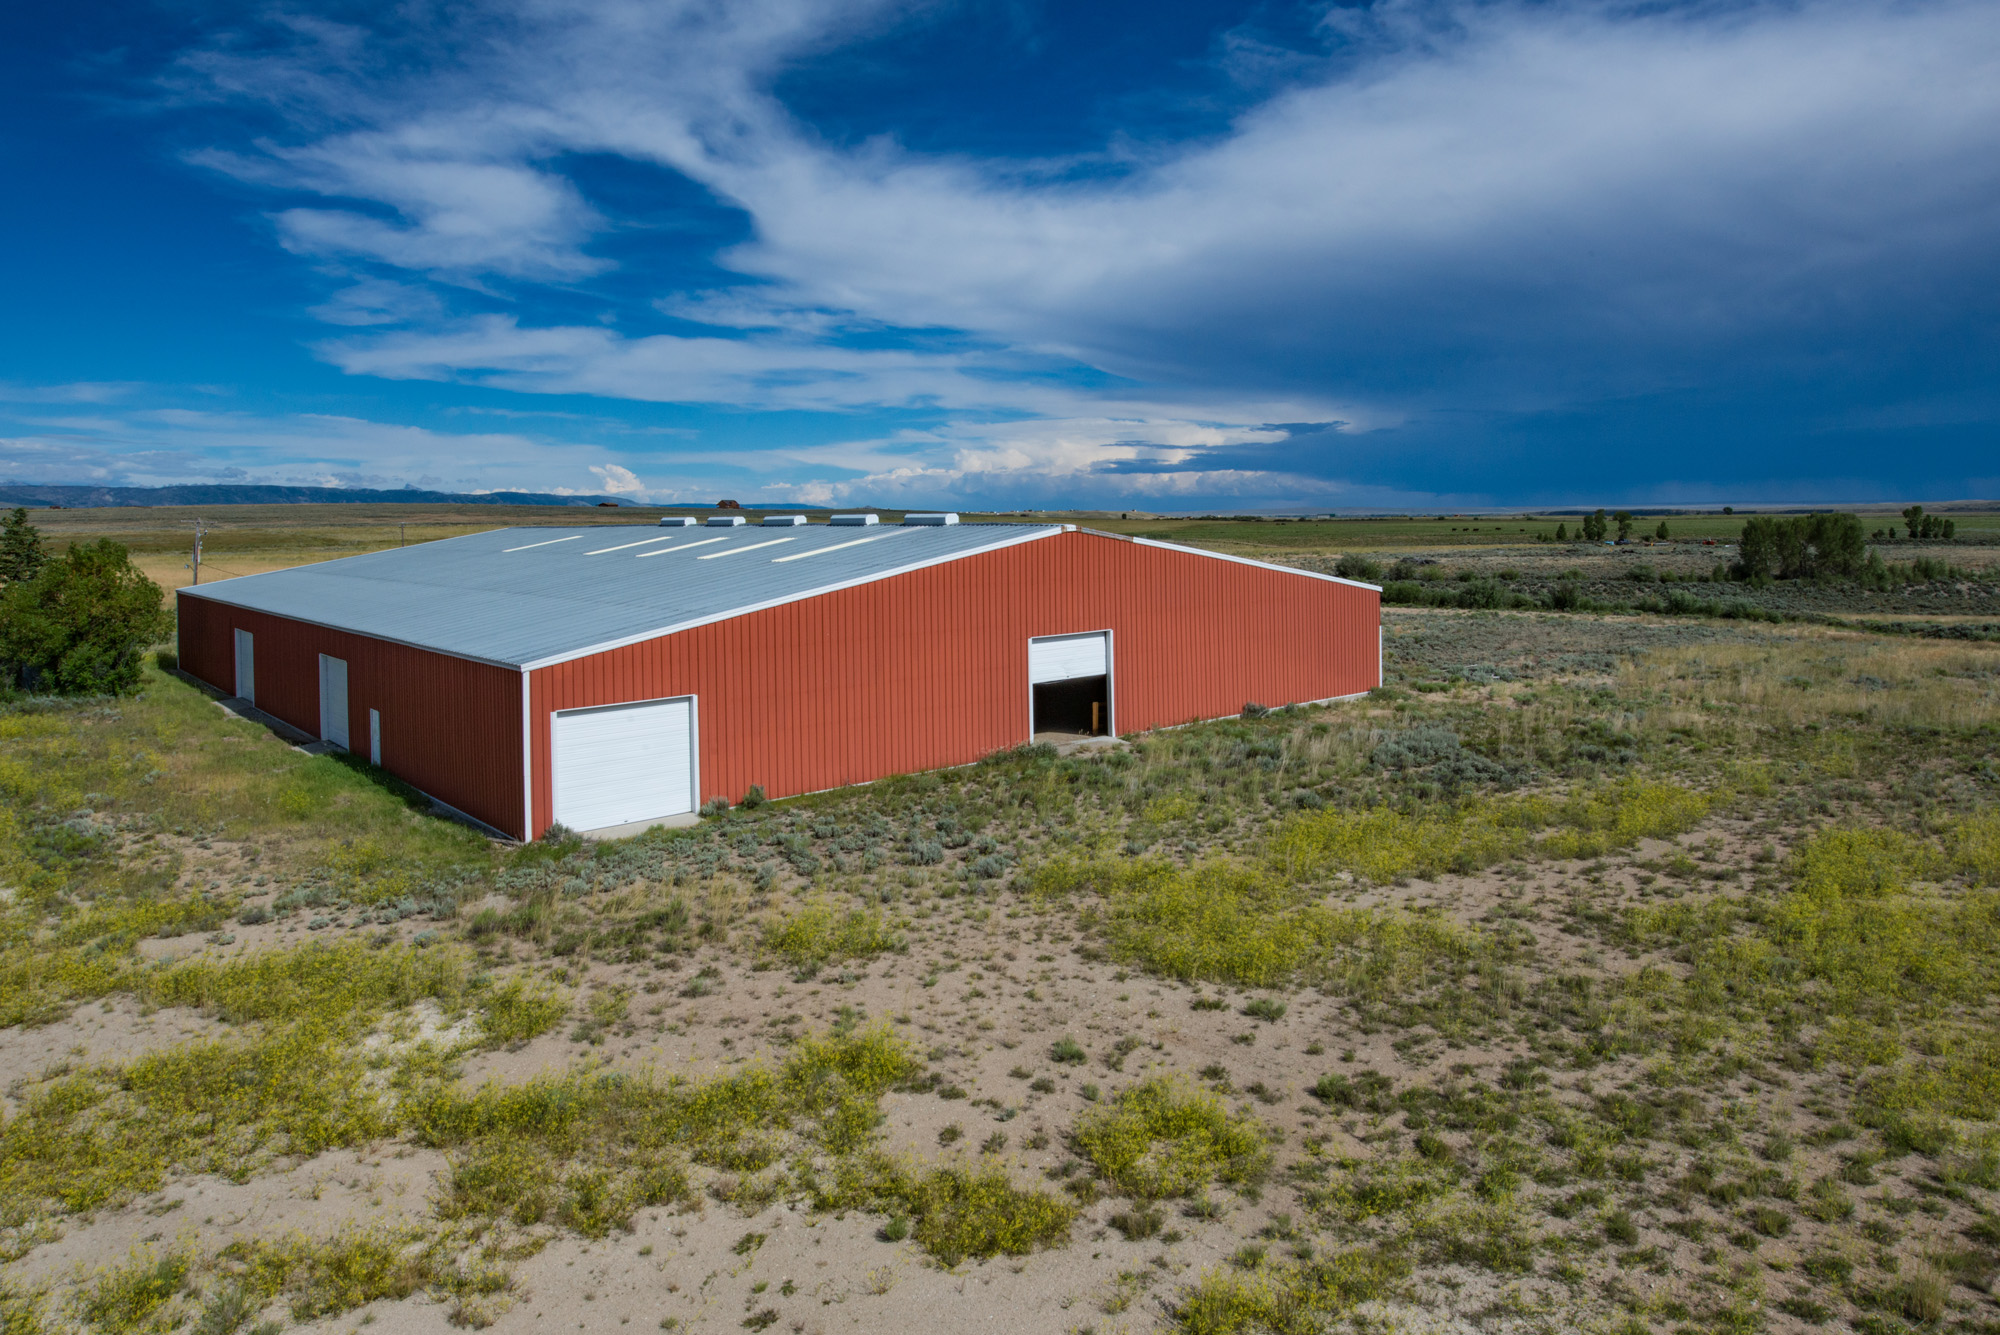 토지 용 매매 에 40 Acre Horse Property in Pinedale, WY 100 Badger Ridge Road Pinedale, 와이오밍 82941 미국